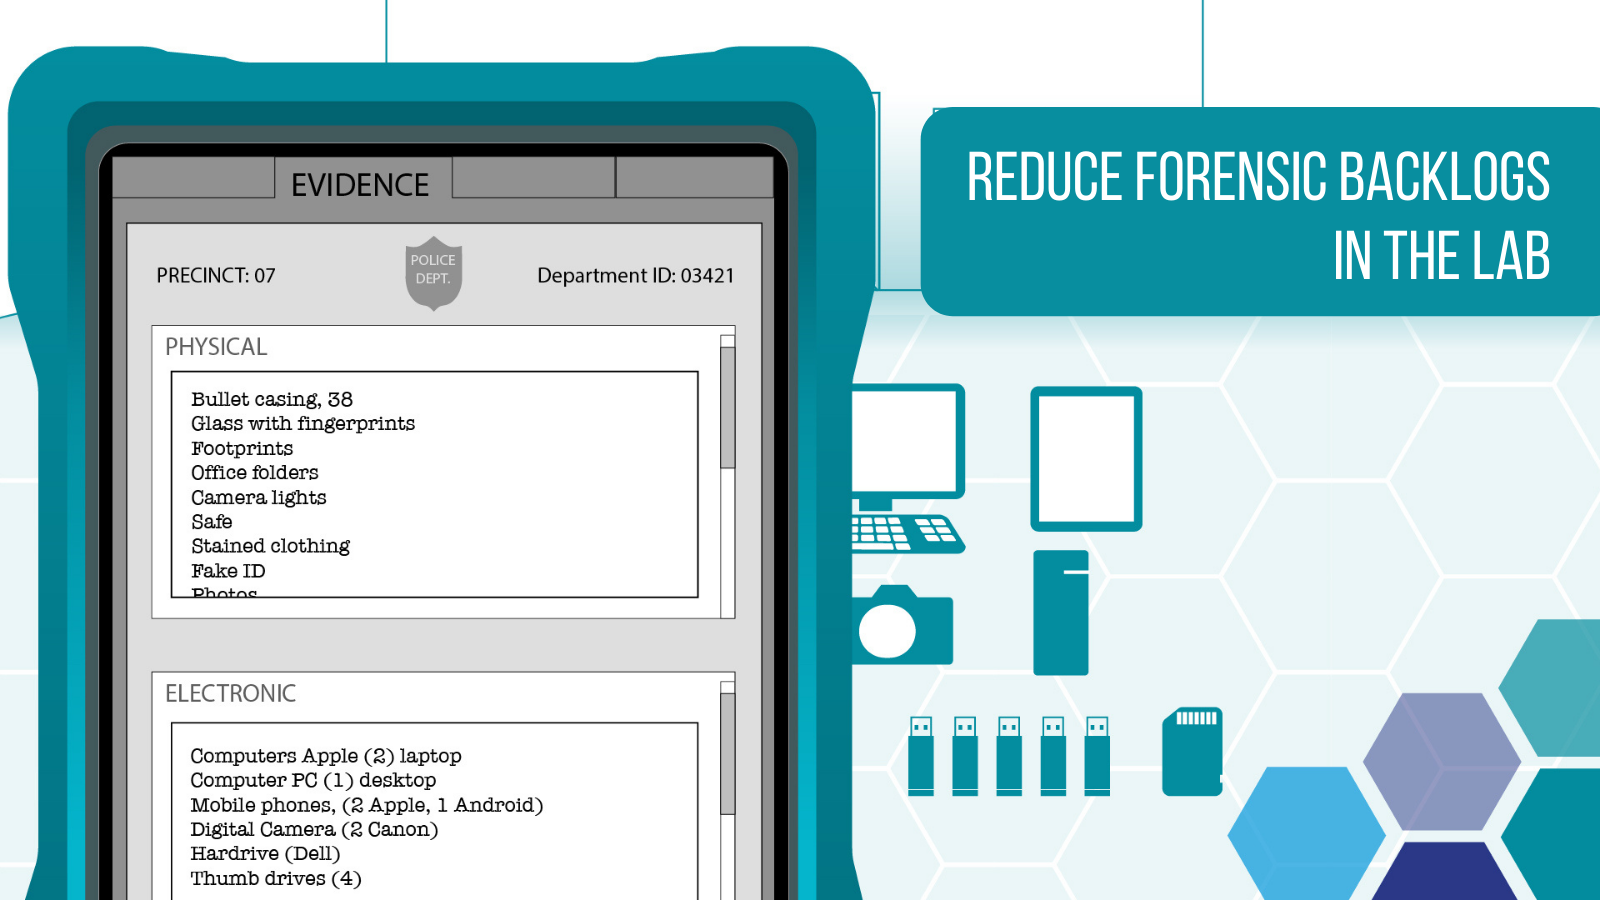 Digital Forensics Lab: How to Reduce Forensic Backlogs